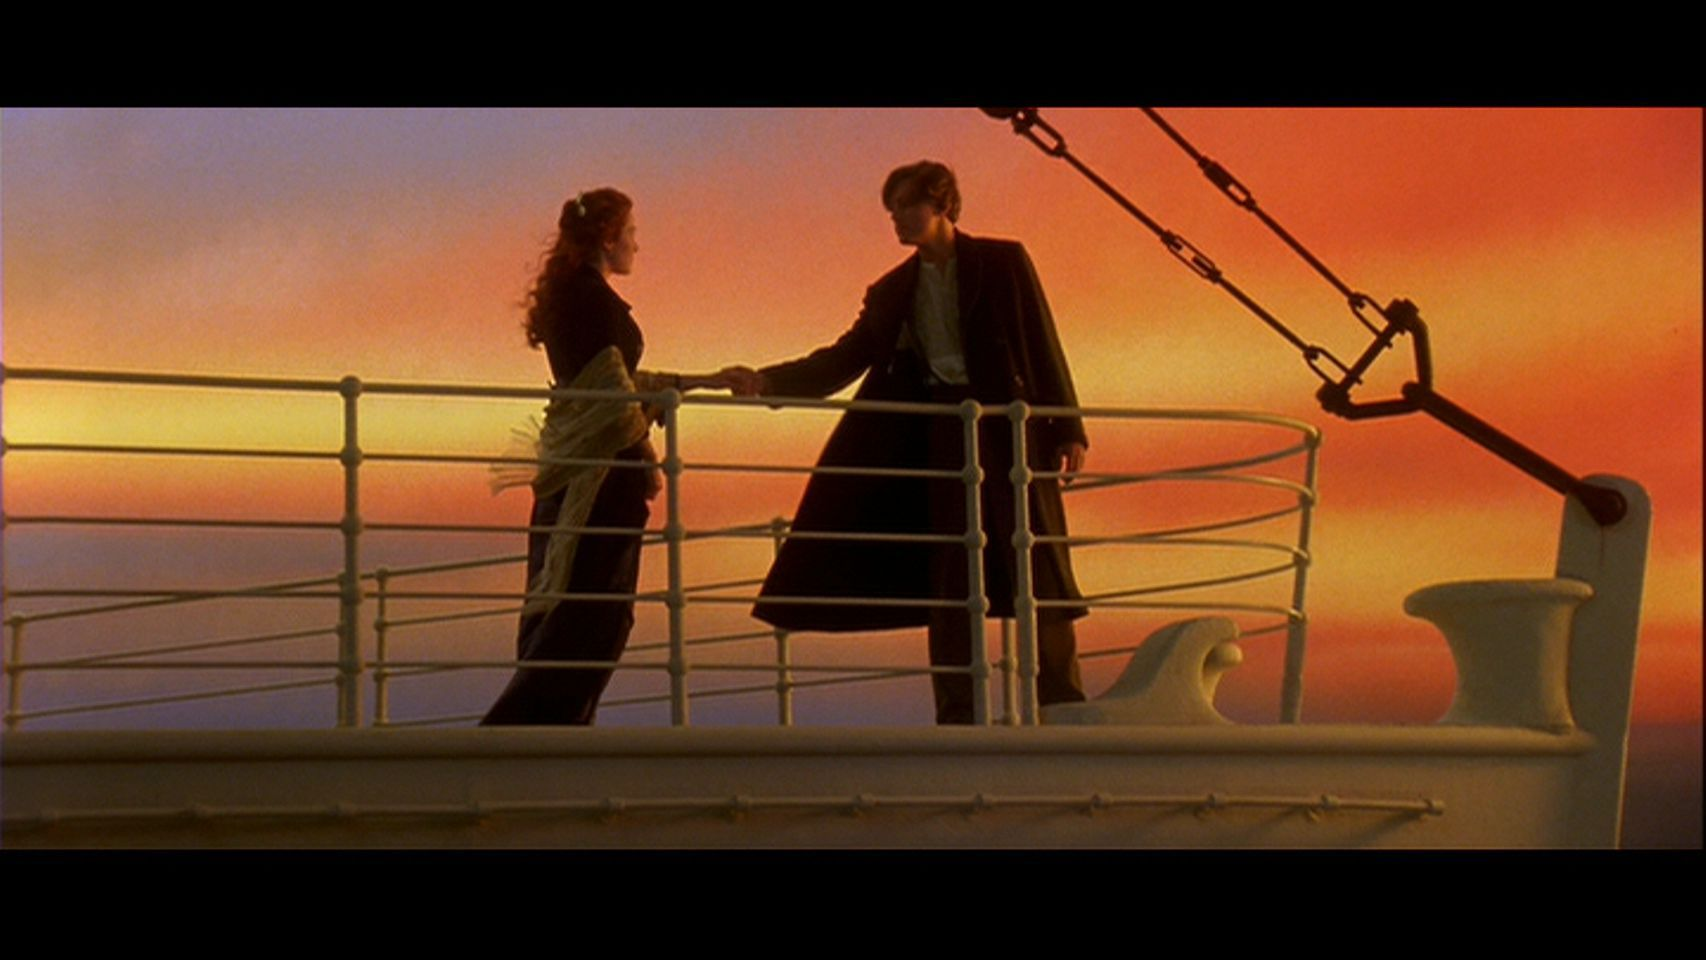 Sweet Wallpaper Boy And Girl Titanic A Romantic Love Story Love Image 21254776